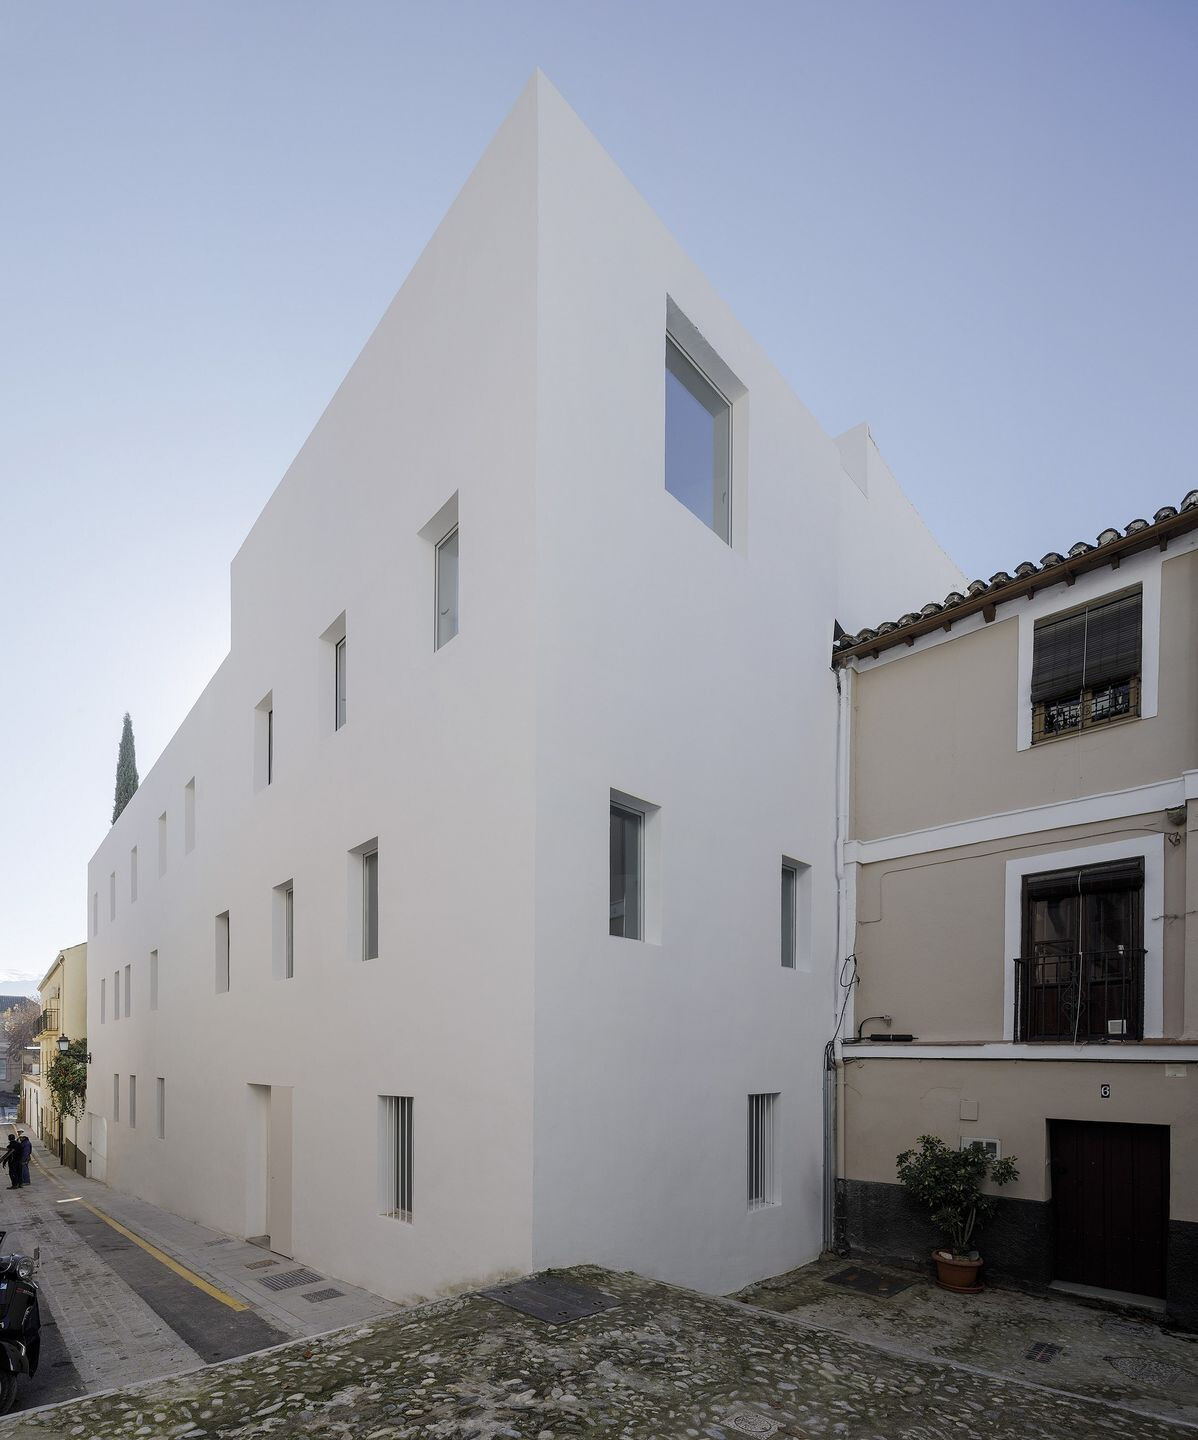 8 experimental apartments in Realejo